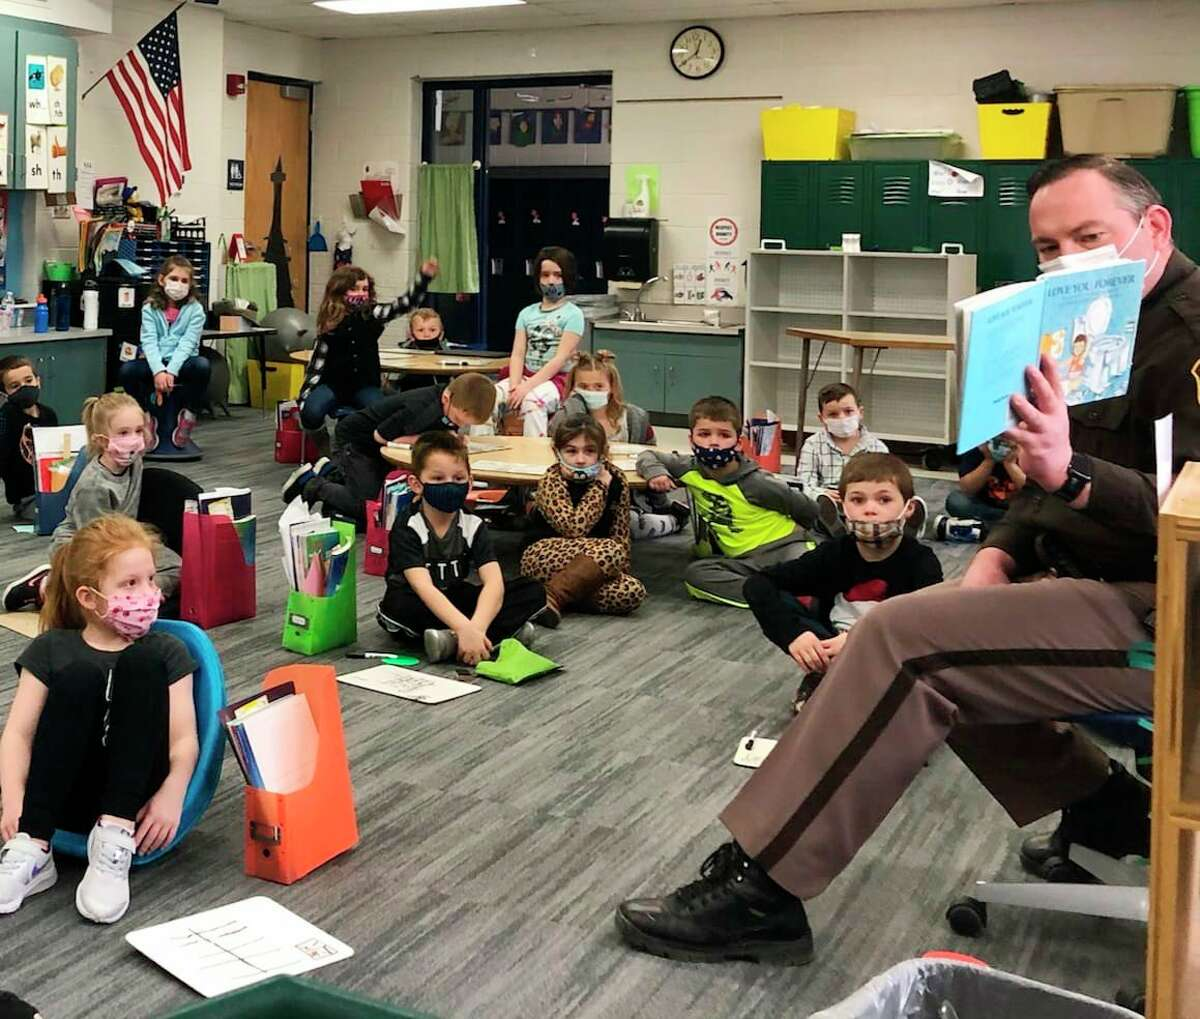 This week, Deputy Jason Losinski, with the Mecosta County Sheriff's Office, visited Riverview Elementary School in Big Rapids to read to Mrs. Zocco's class as part of March is Reading Month. (Photo courtesy of Mecosta County Sheriff's Office)